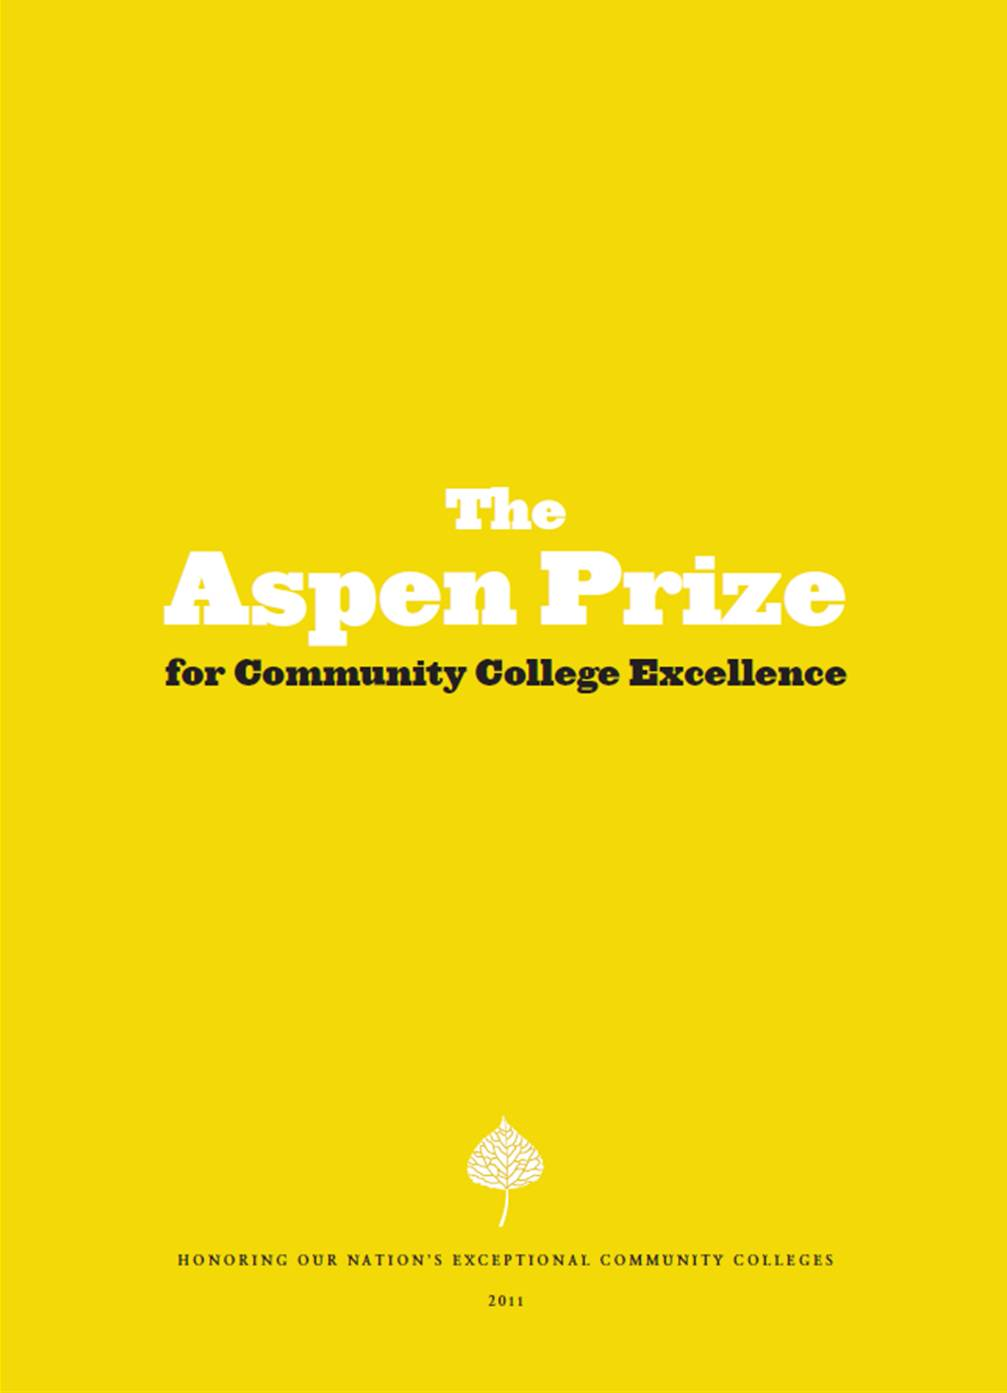 2011 Aspen Prize for Community College Excellence